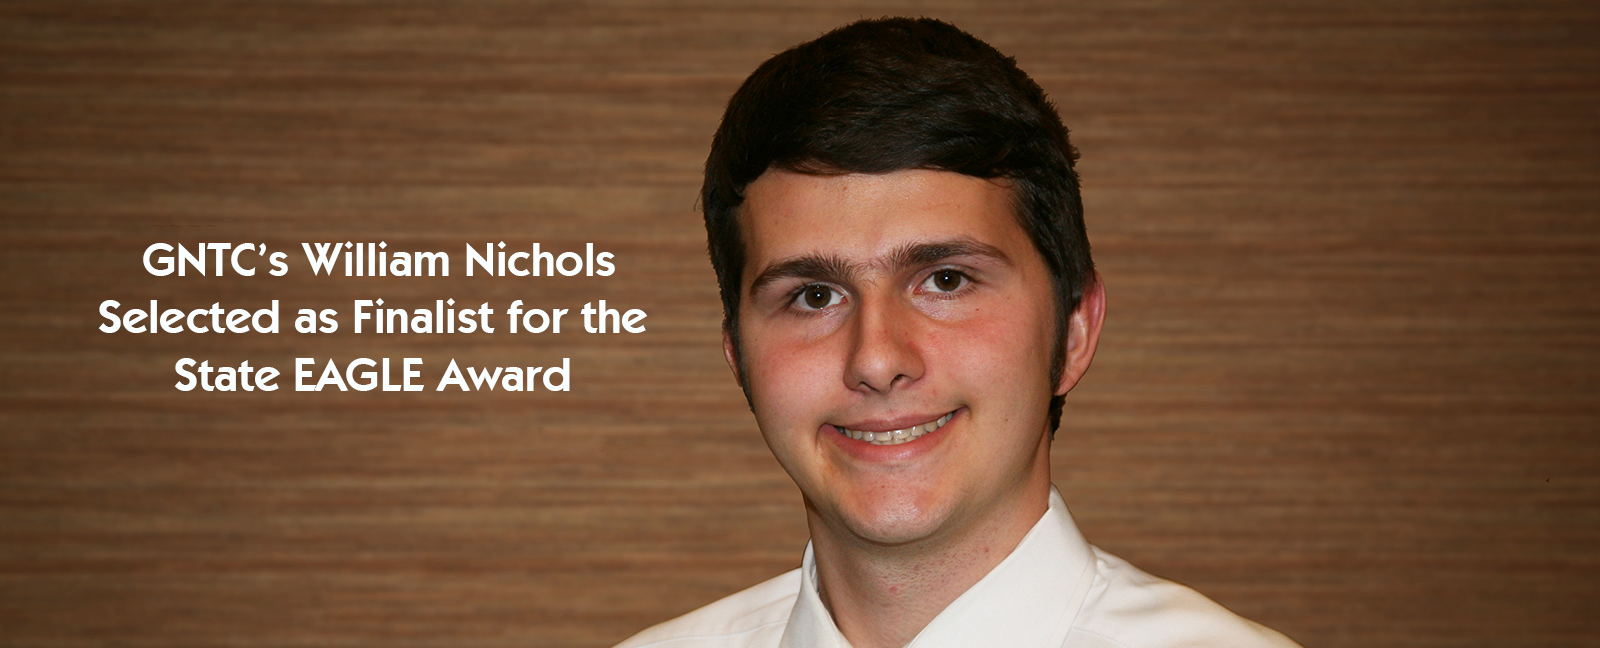 William Nichols Selected as Finalist for the State EAGLE Award